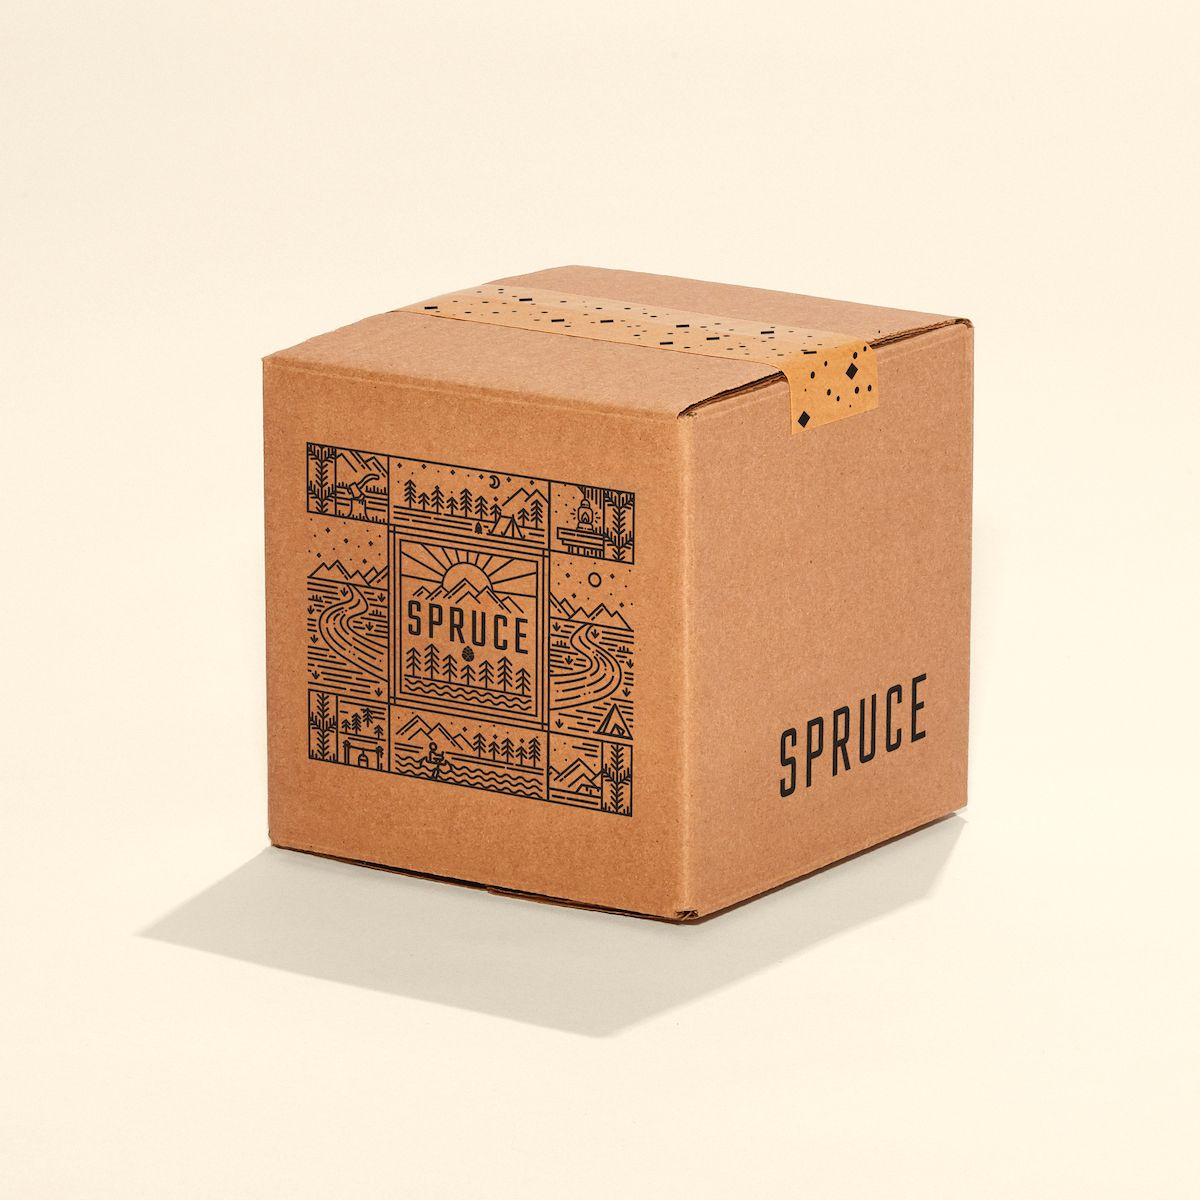 Printed econoflex shipping box with logo